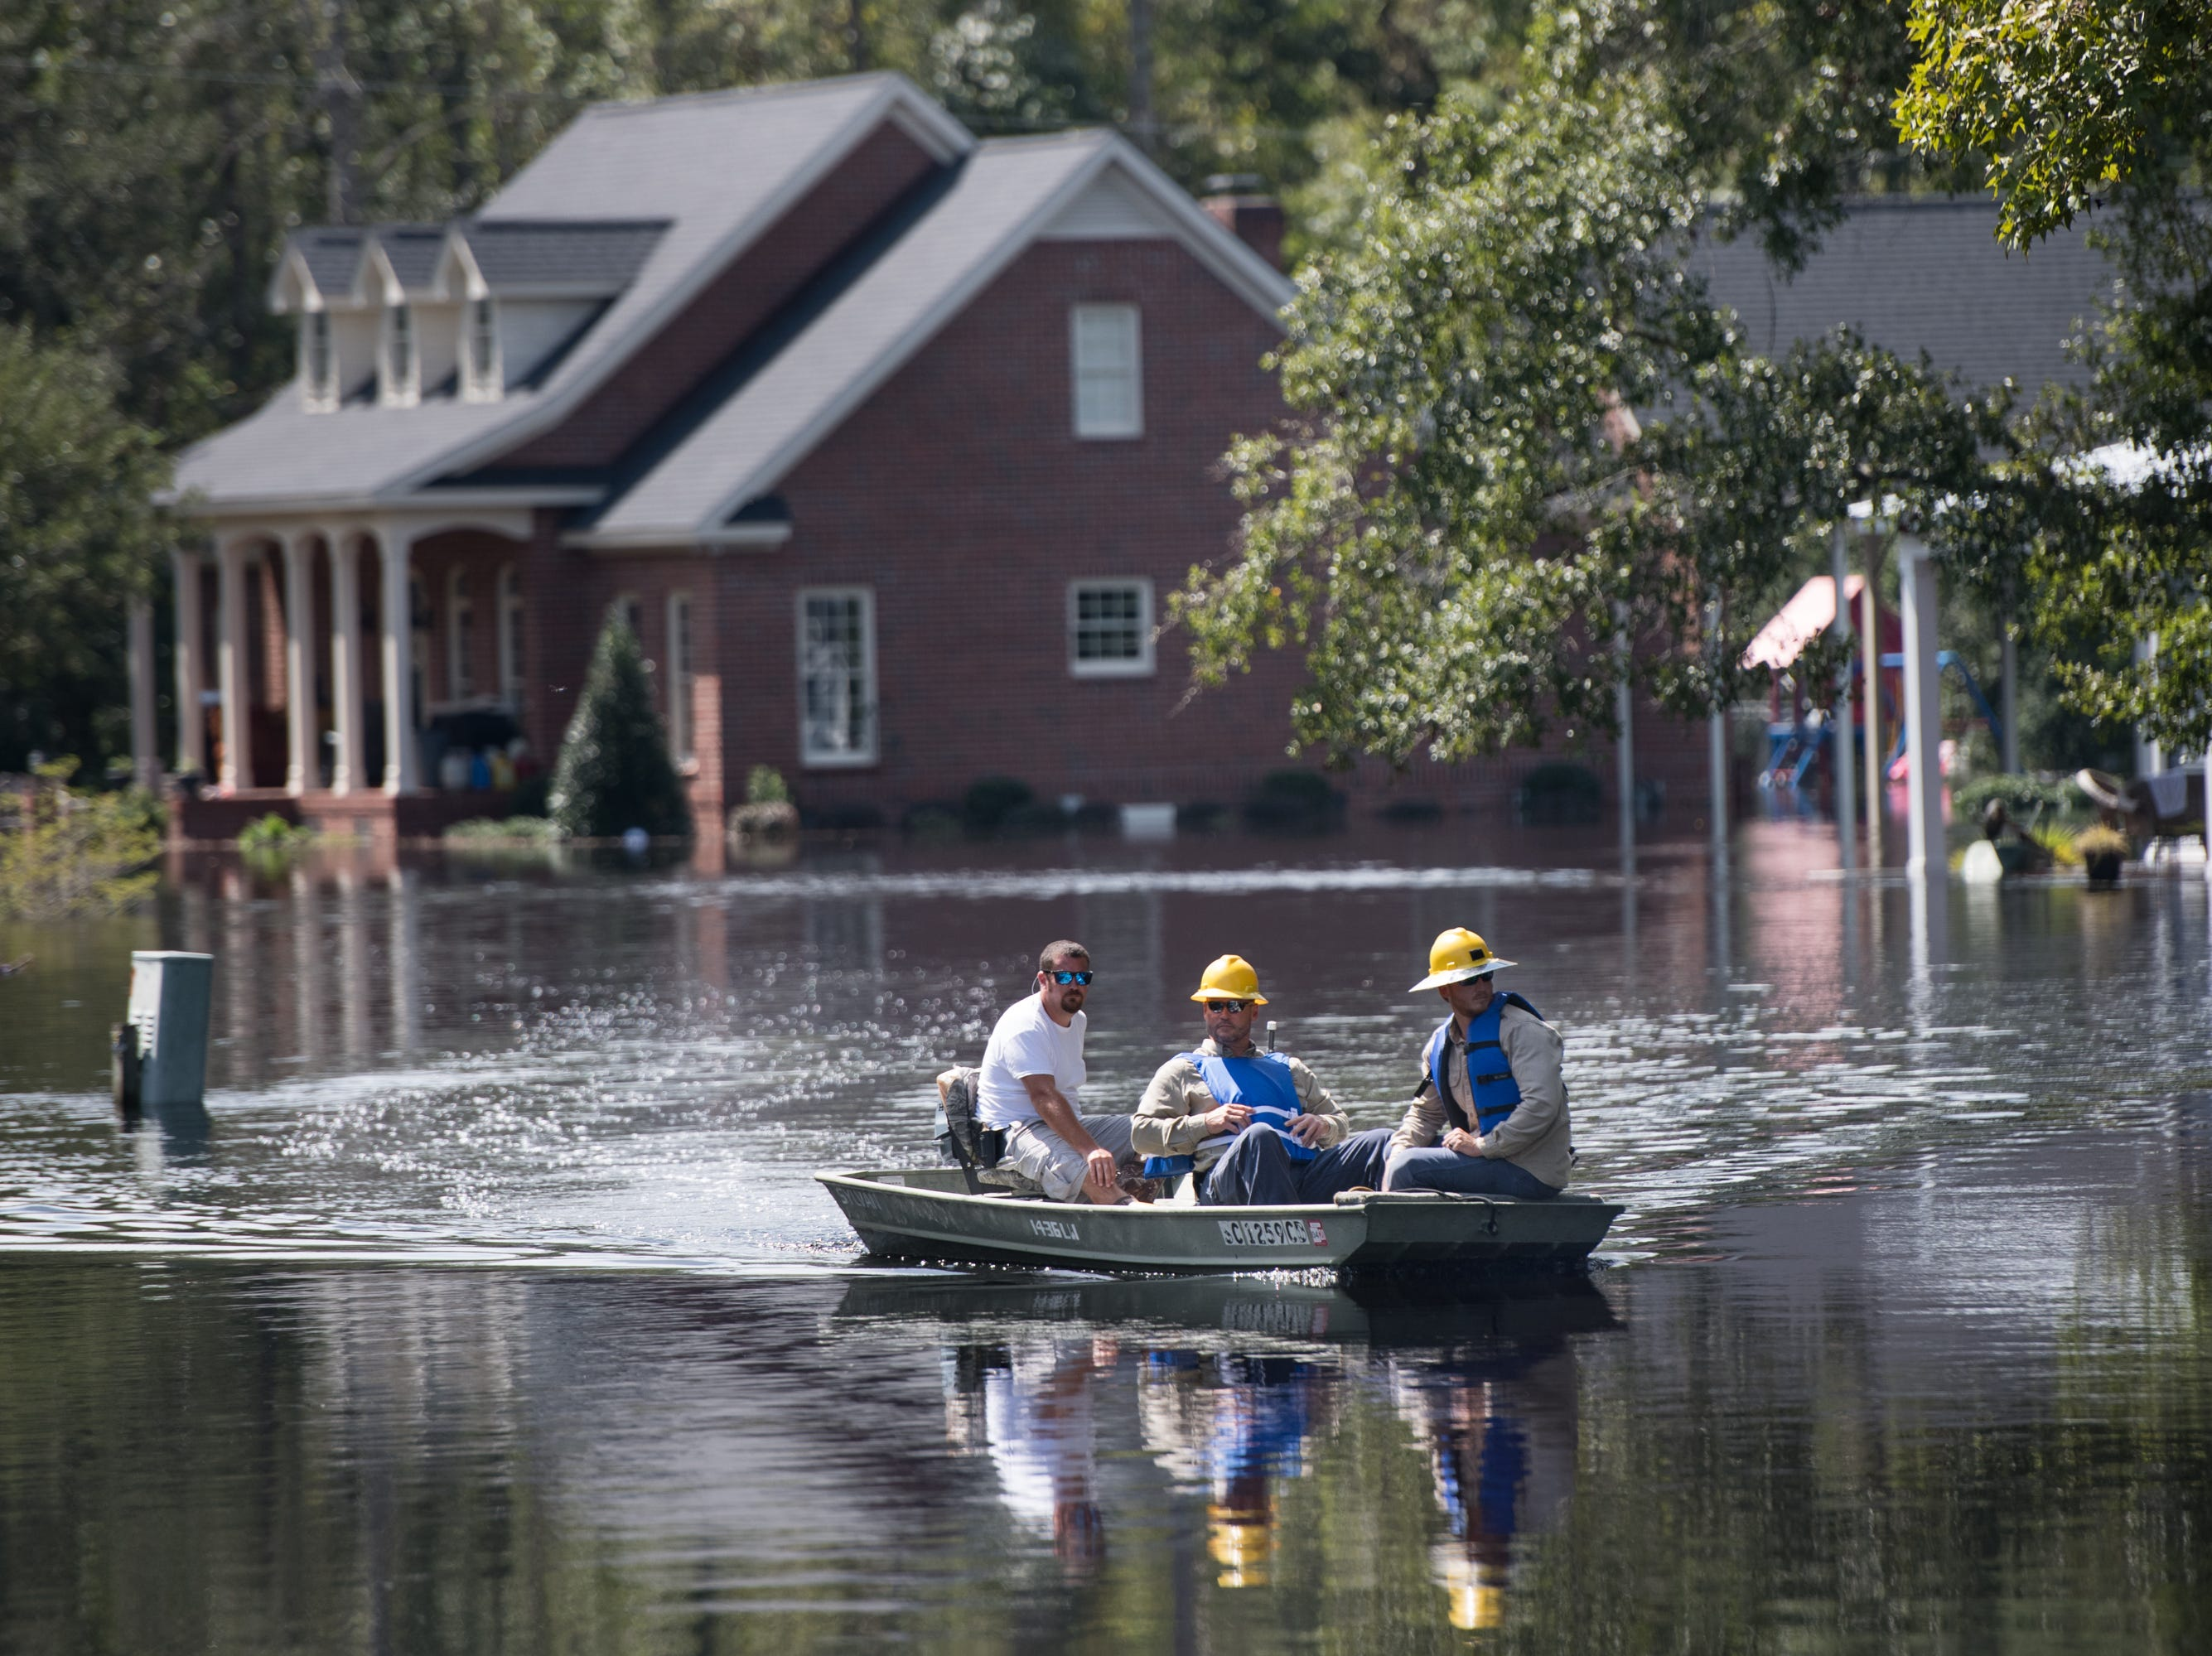 People navigate floodwaters caused by Hurricane Florence near the Waccamaw River on Sept. 23, 2018 in Conway, S.C.